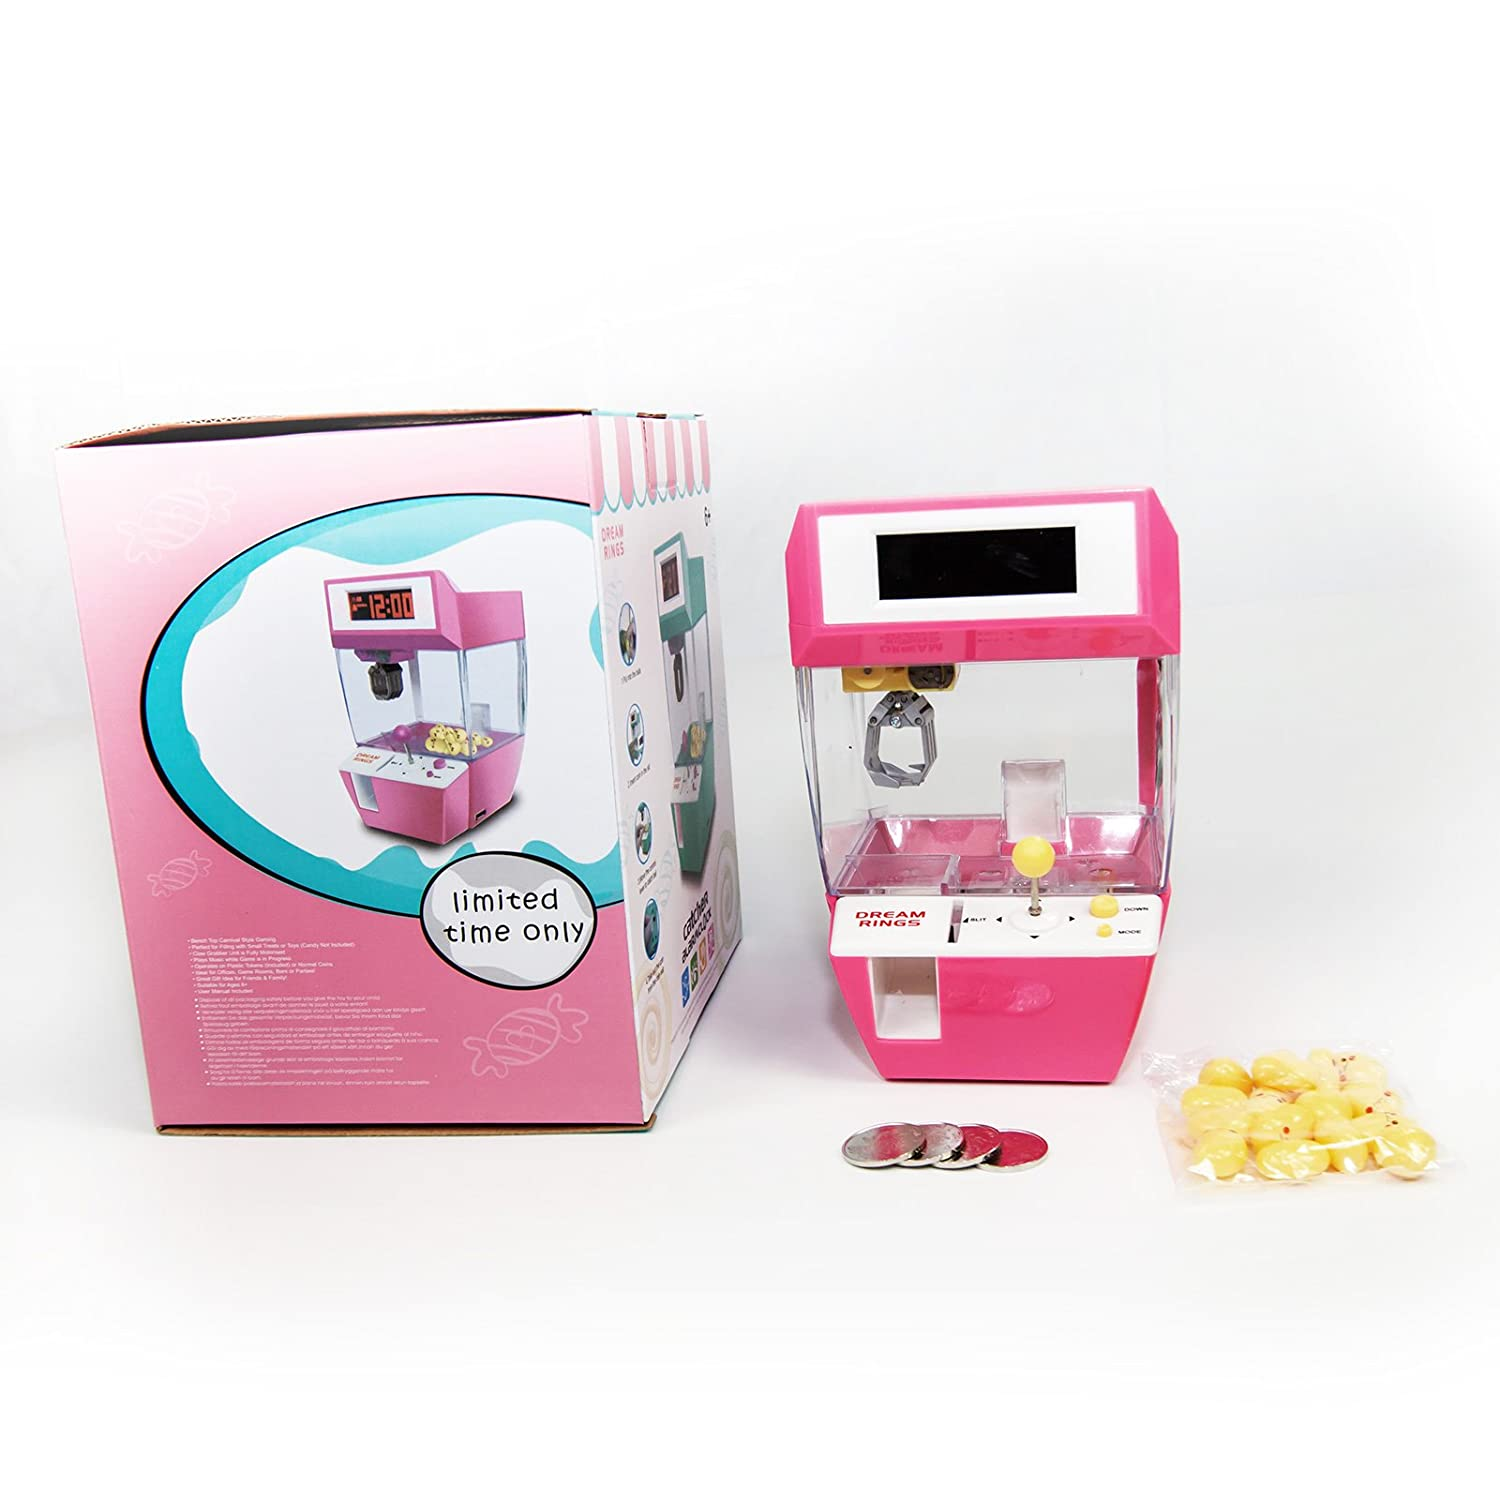 ESC Electronic Alarm Clock with Claw Catcher Game Candy Grabber Toy Pink Dream Rings JS1812